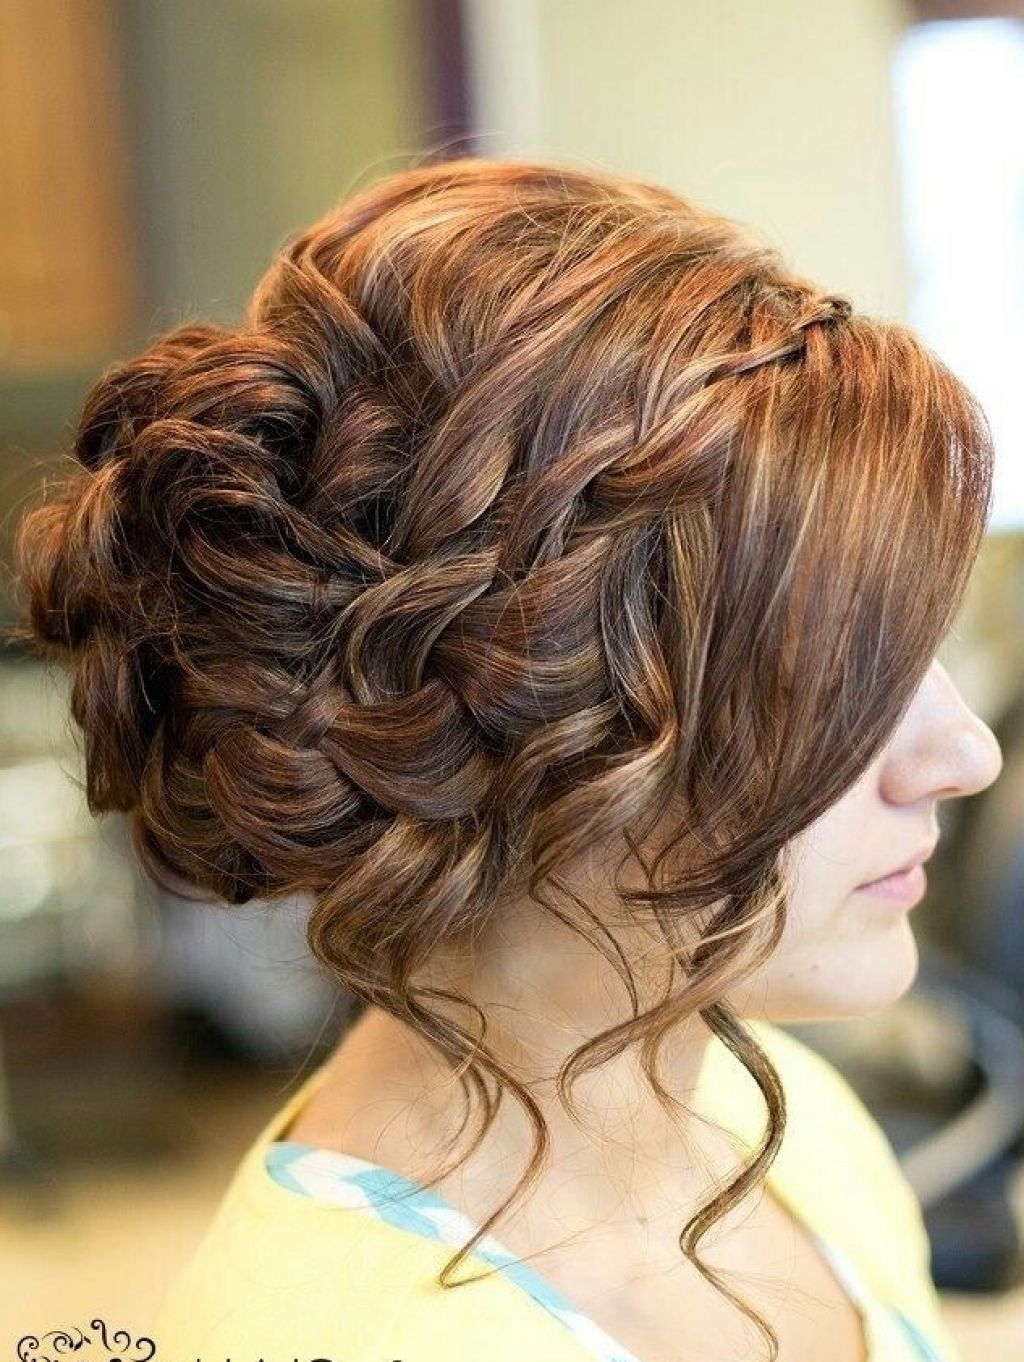 14 Prom Hairstyles For Long Hair That Are Simply Adorable Intended For Famous Multi Braid Updo Hairstyles (View 2 of 20)